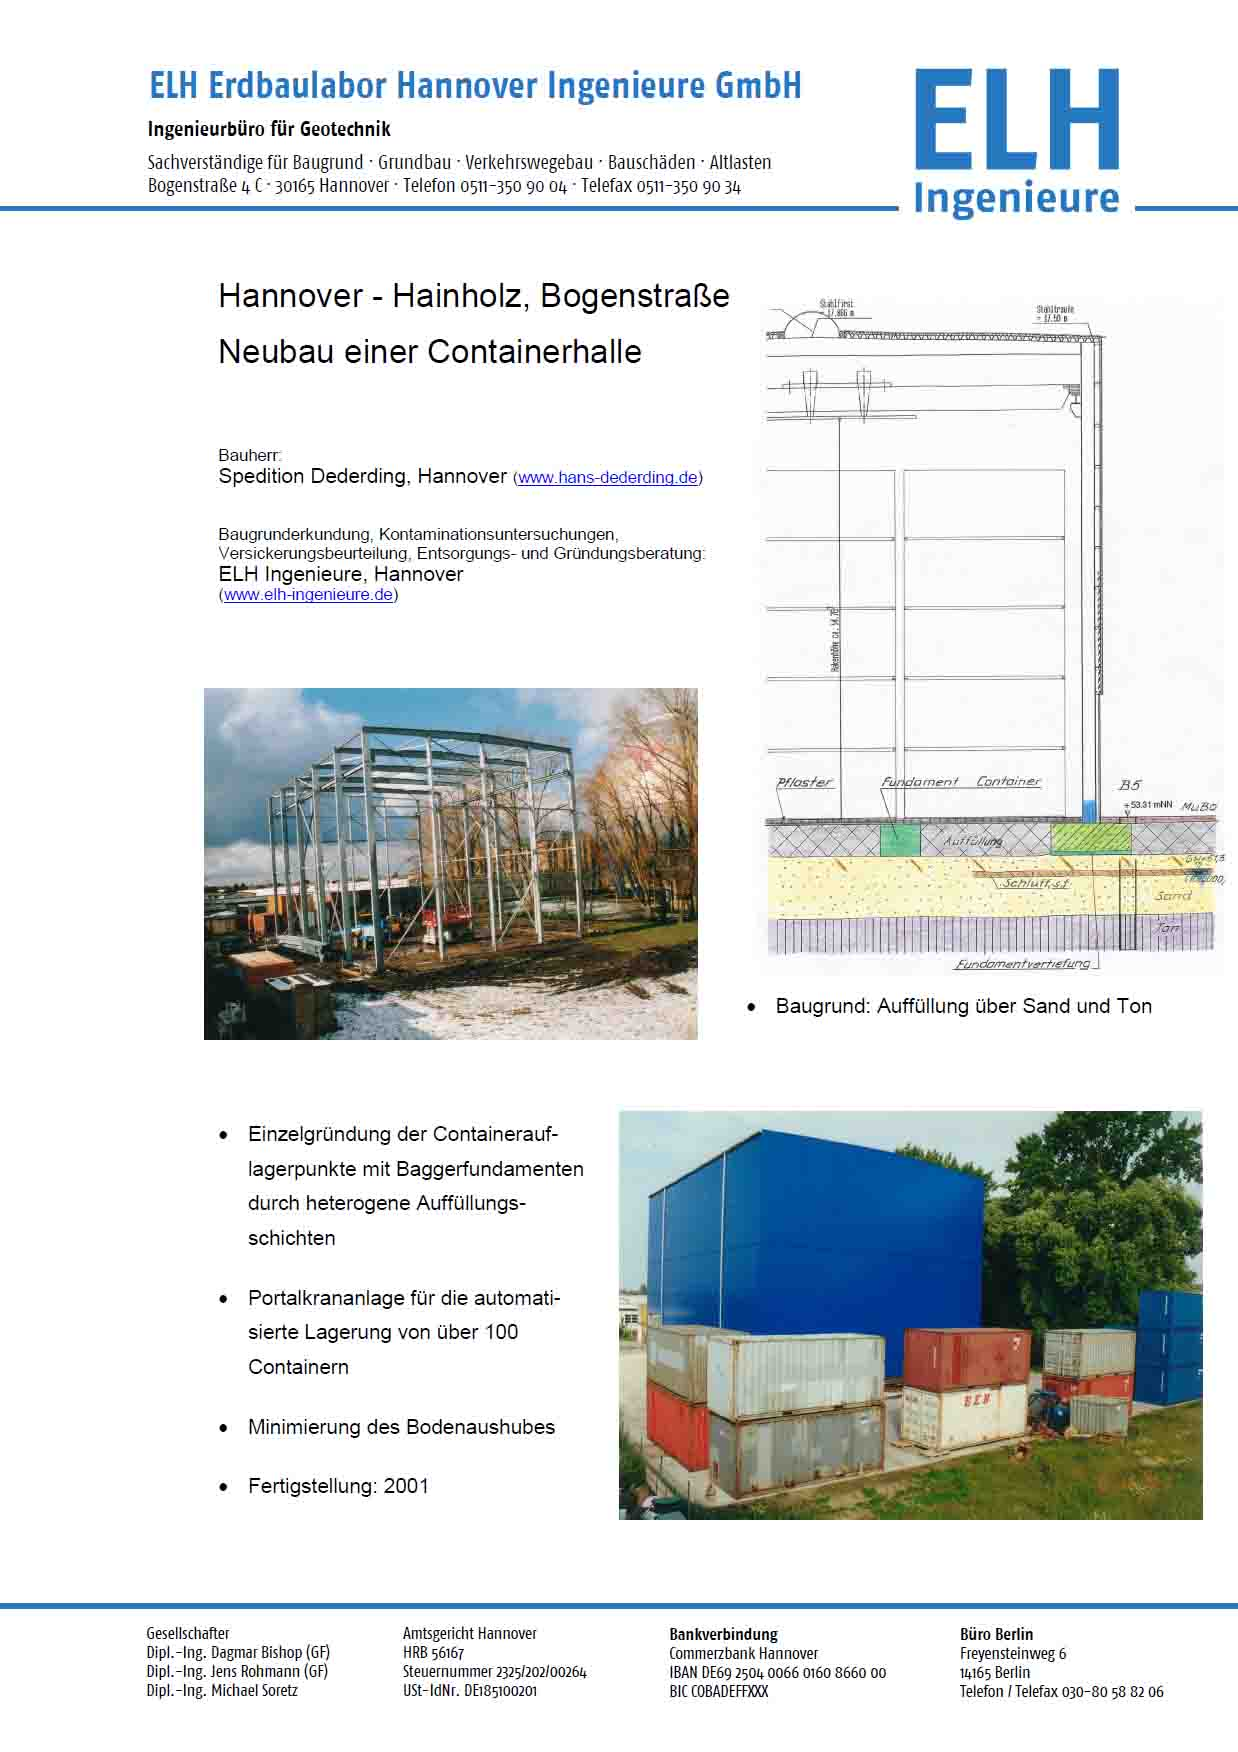 PB H Hainholz Container